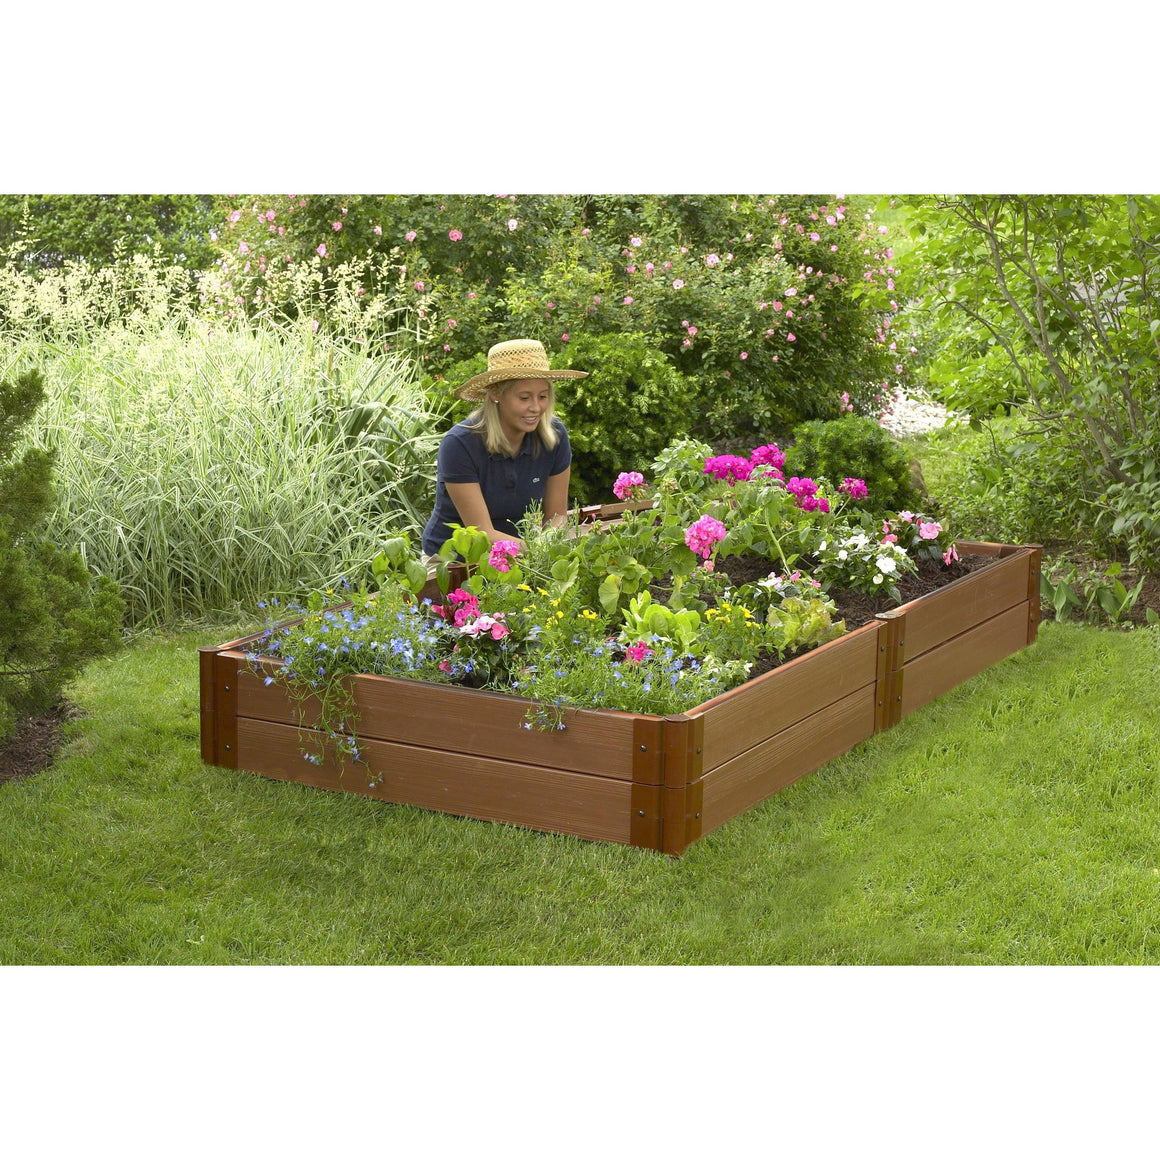 "Raised Garden Bed-Composite 4'X8' Rectangle 2 Level (1"" Profile) Shown on lawn planted with woman kneeling planting"